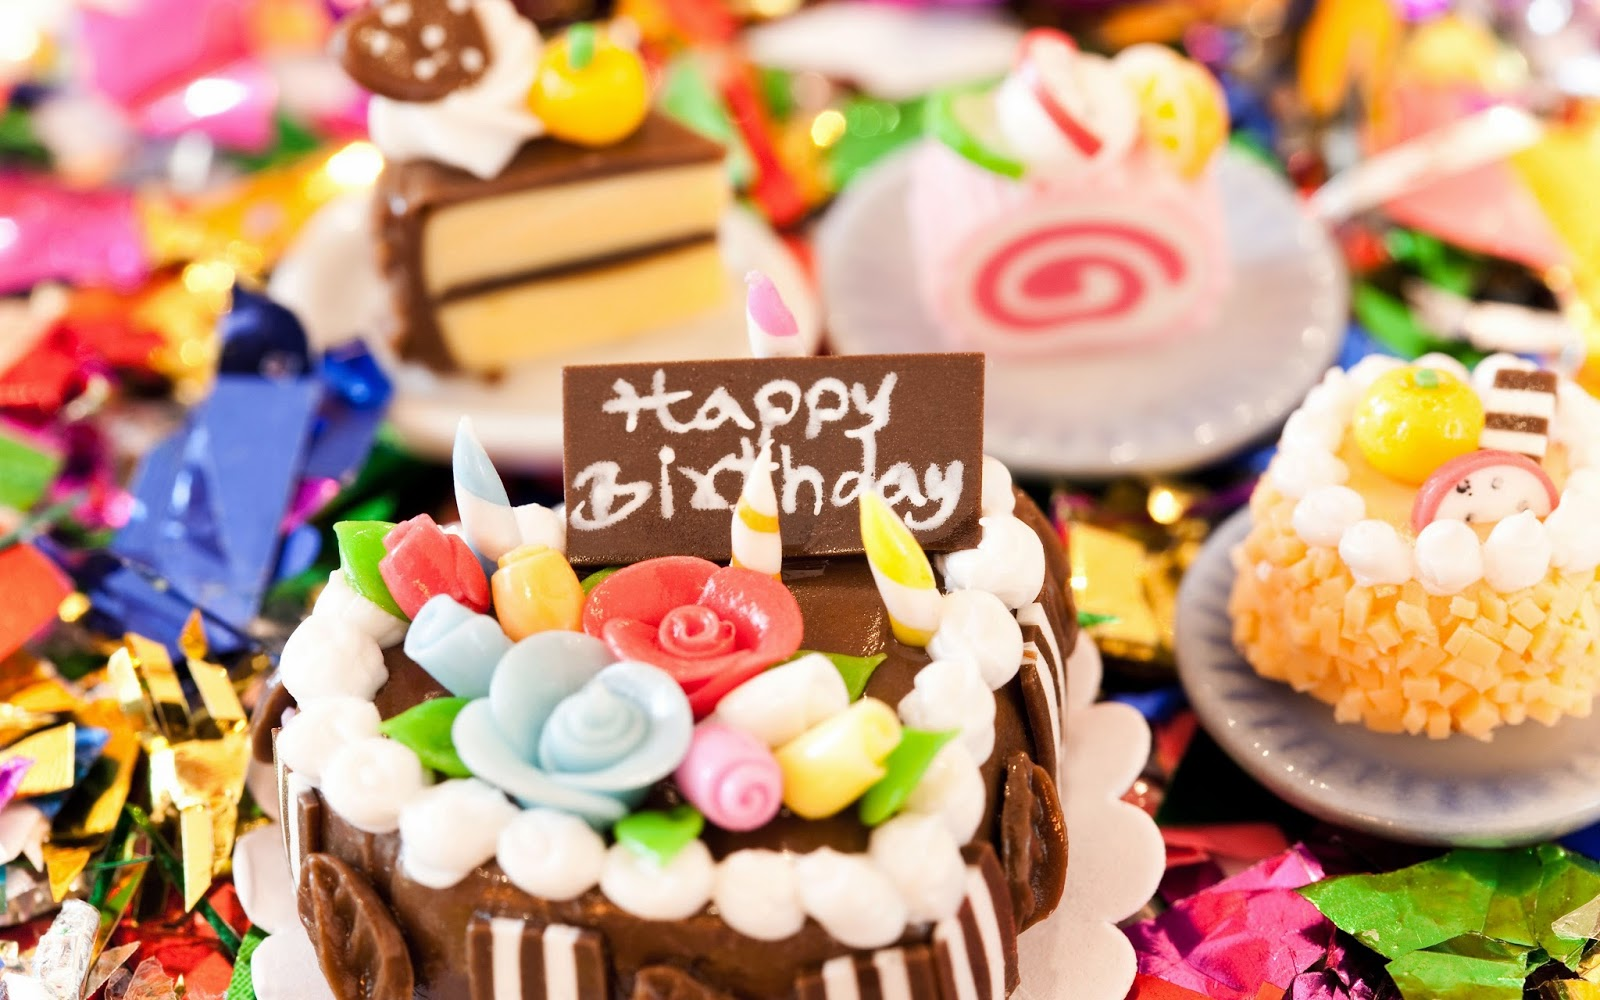 Happy Birthday Wishes Pictures Free Download. Happy Birthday Cake Hd ...